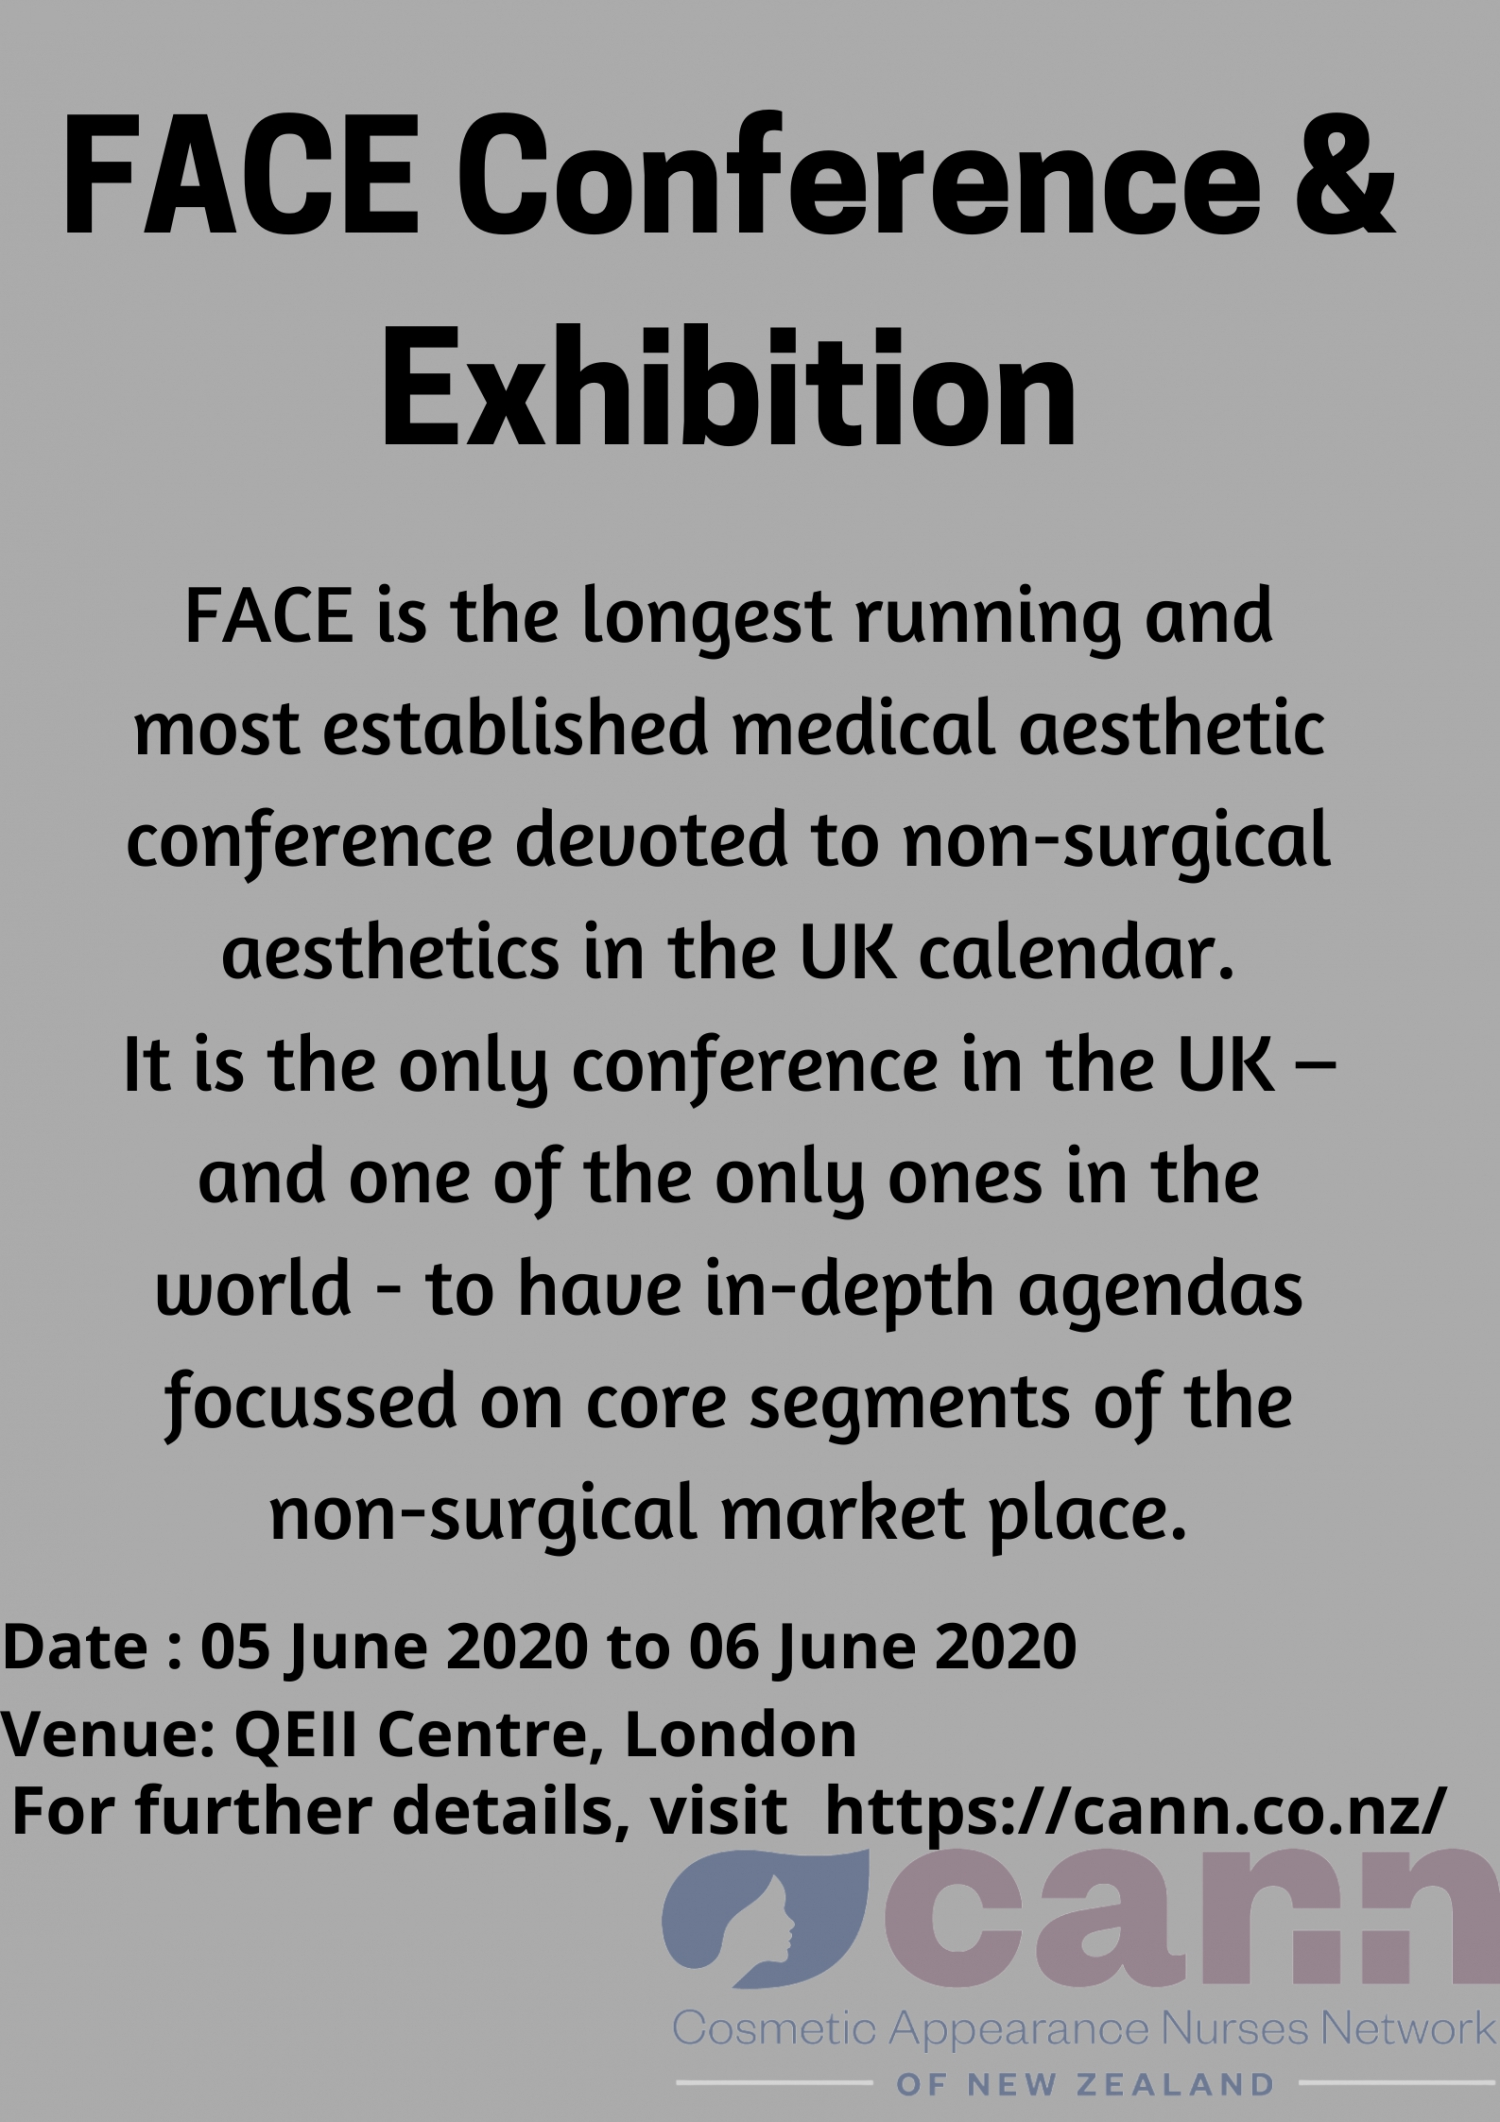 FACE Conference & Exhibition - June